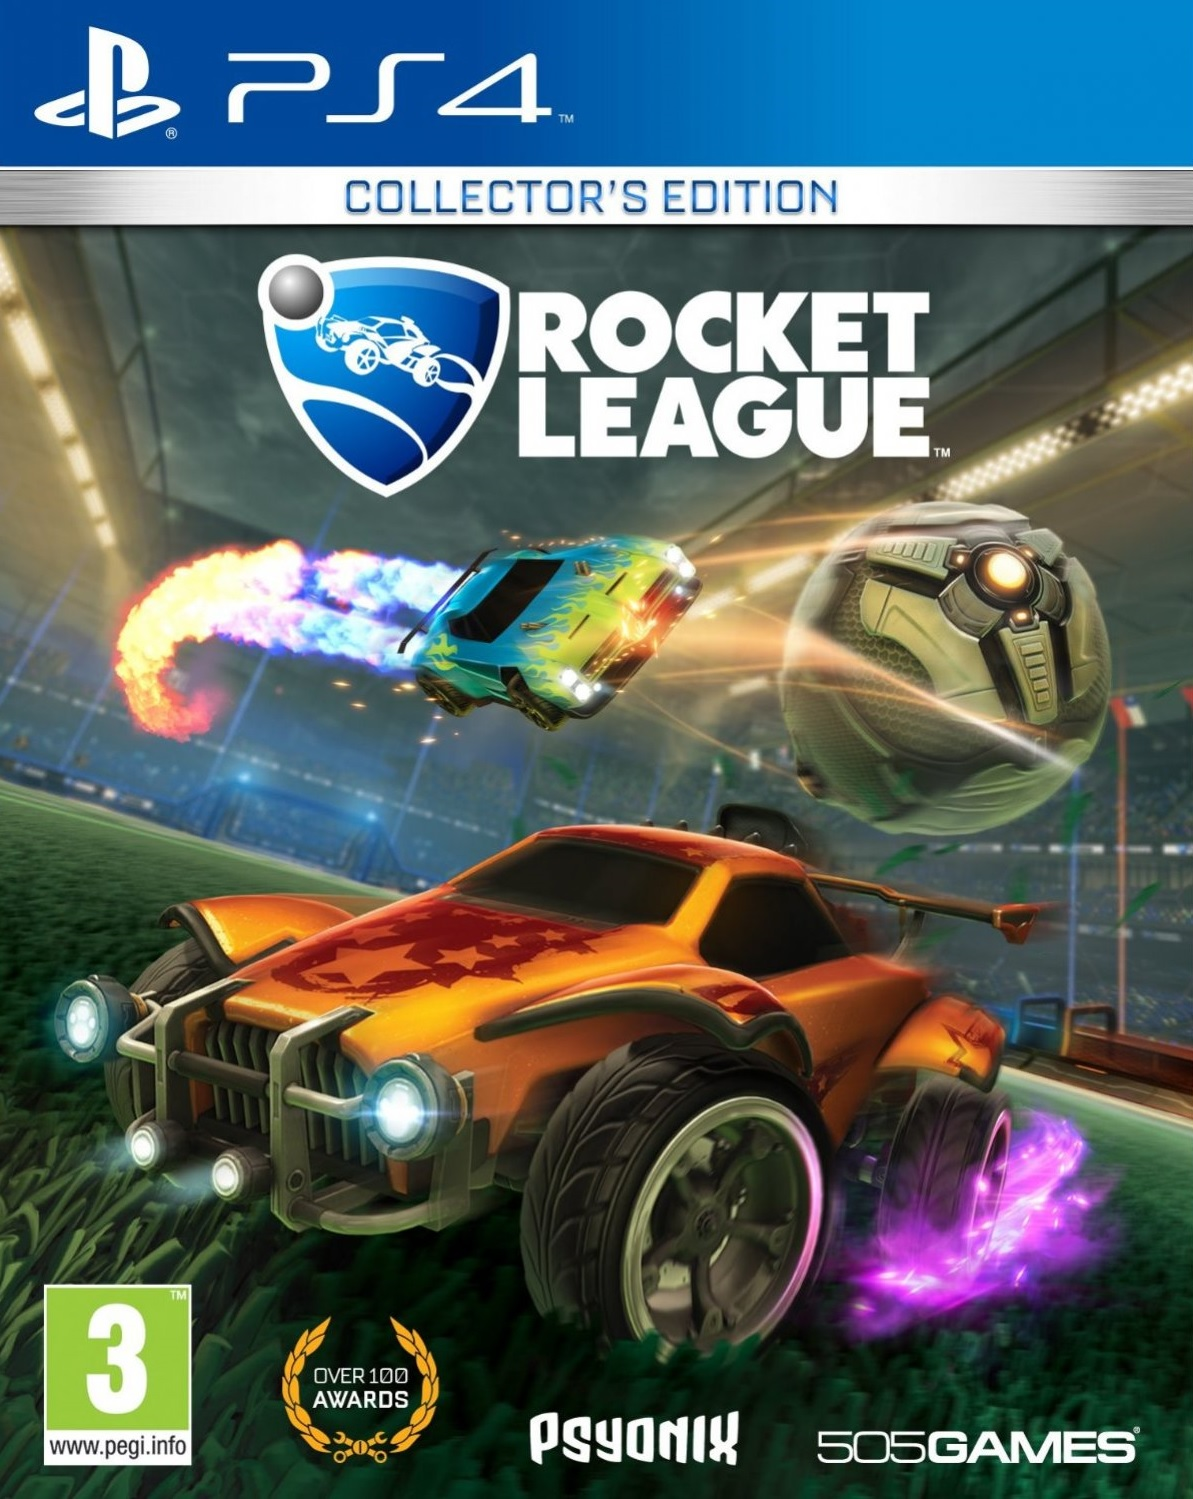 Rocket League Collectors Edition - PlayStation 4 Játékok